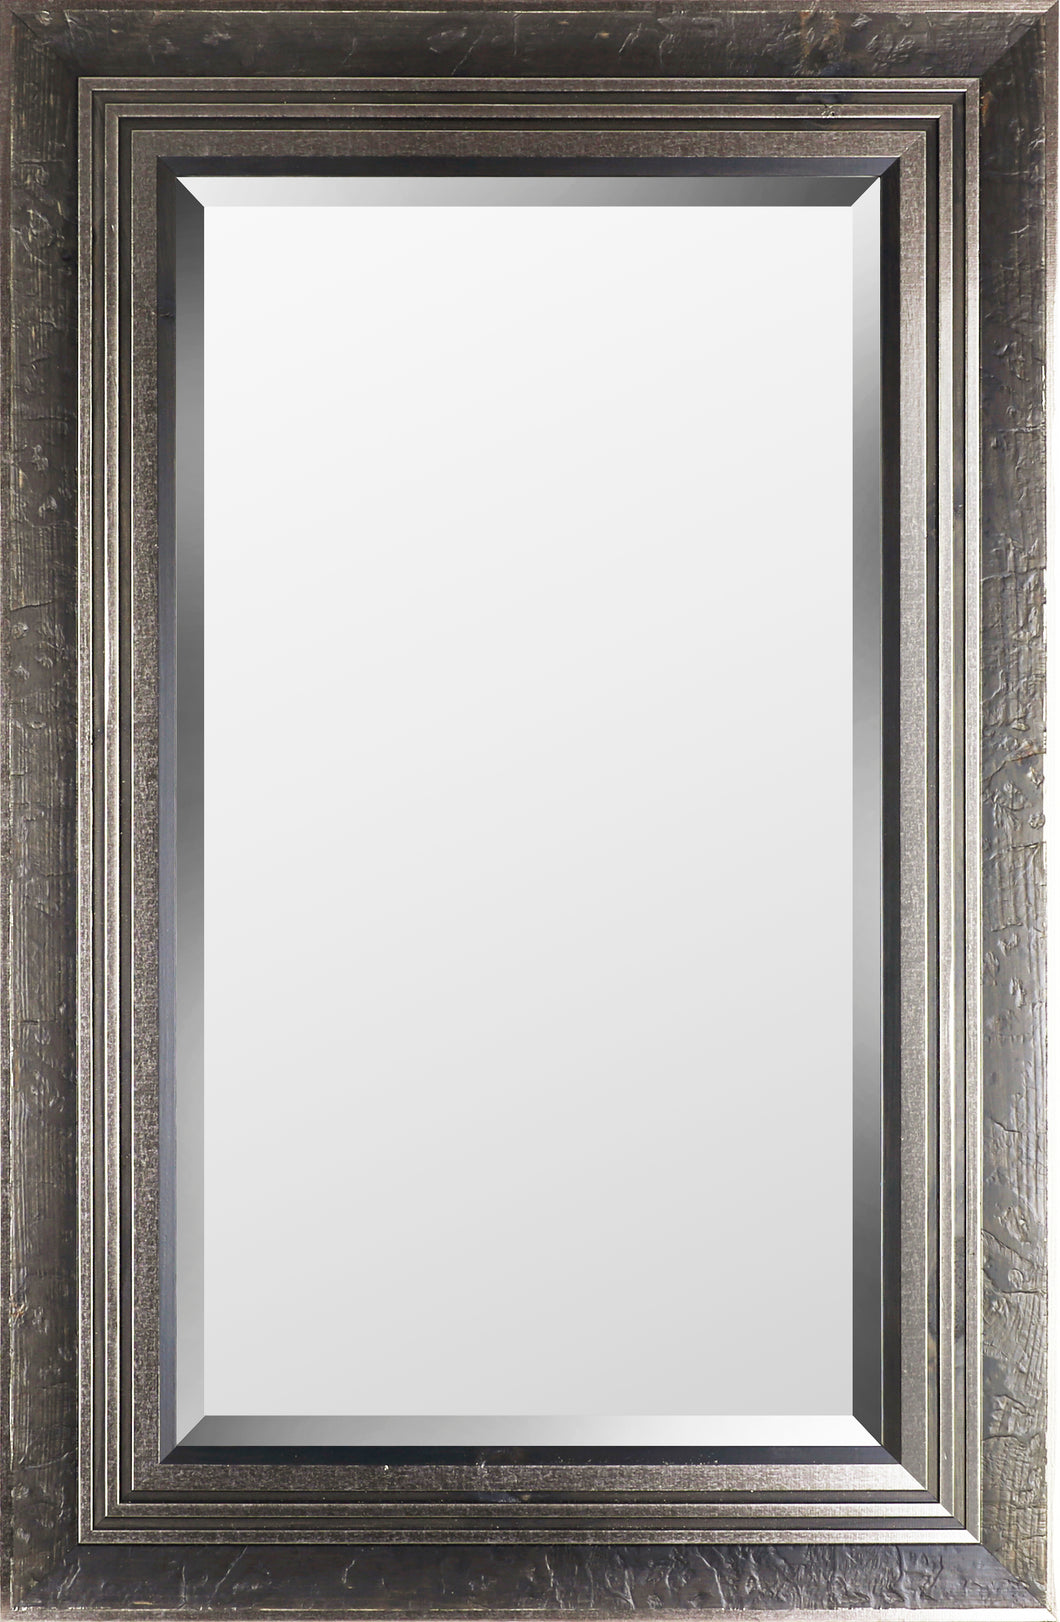 29.25X45.25 SILVER STUCCO WOOD (BEVEL MIRROR)